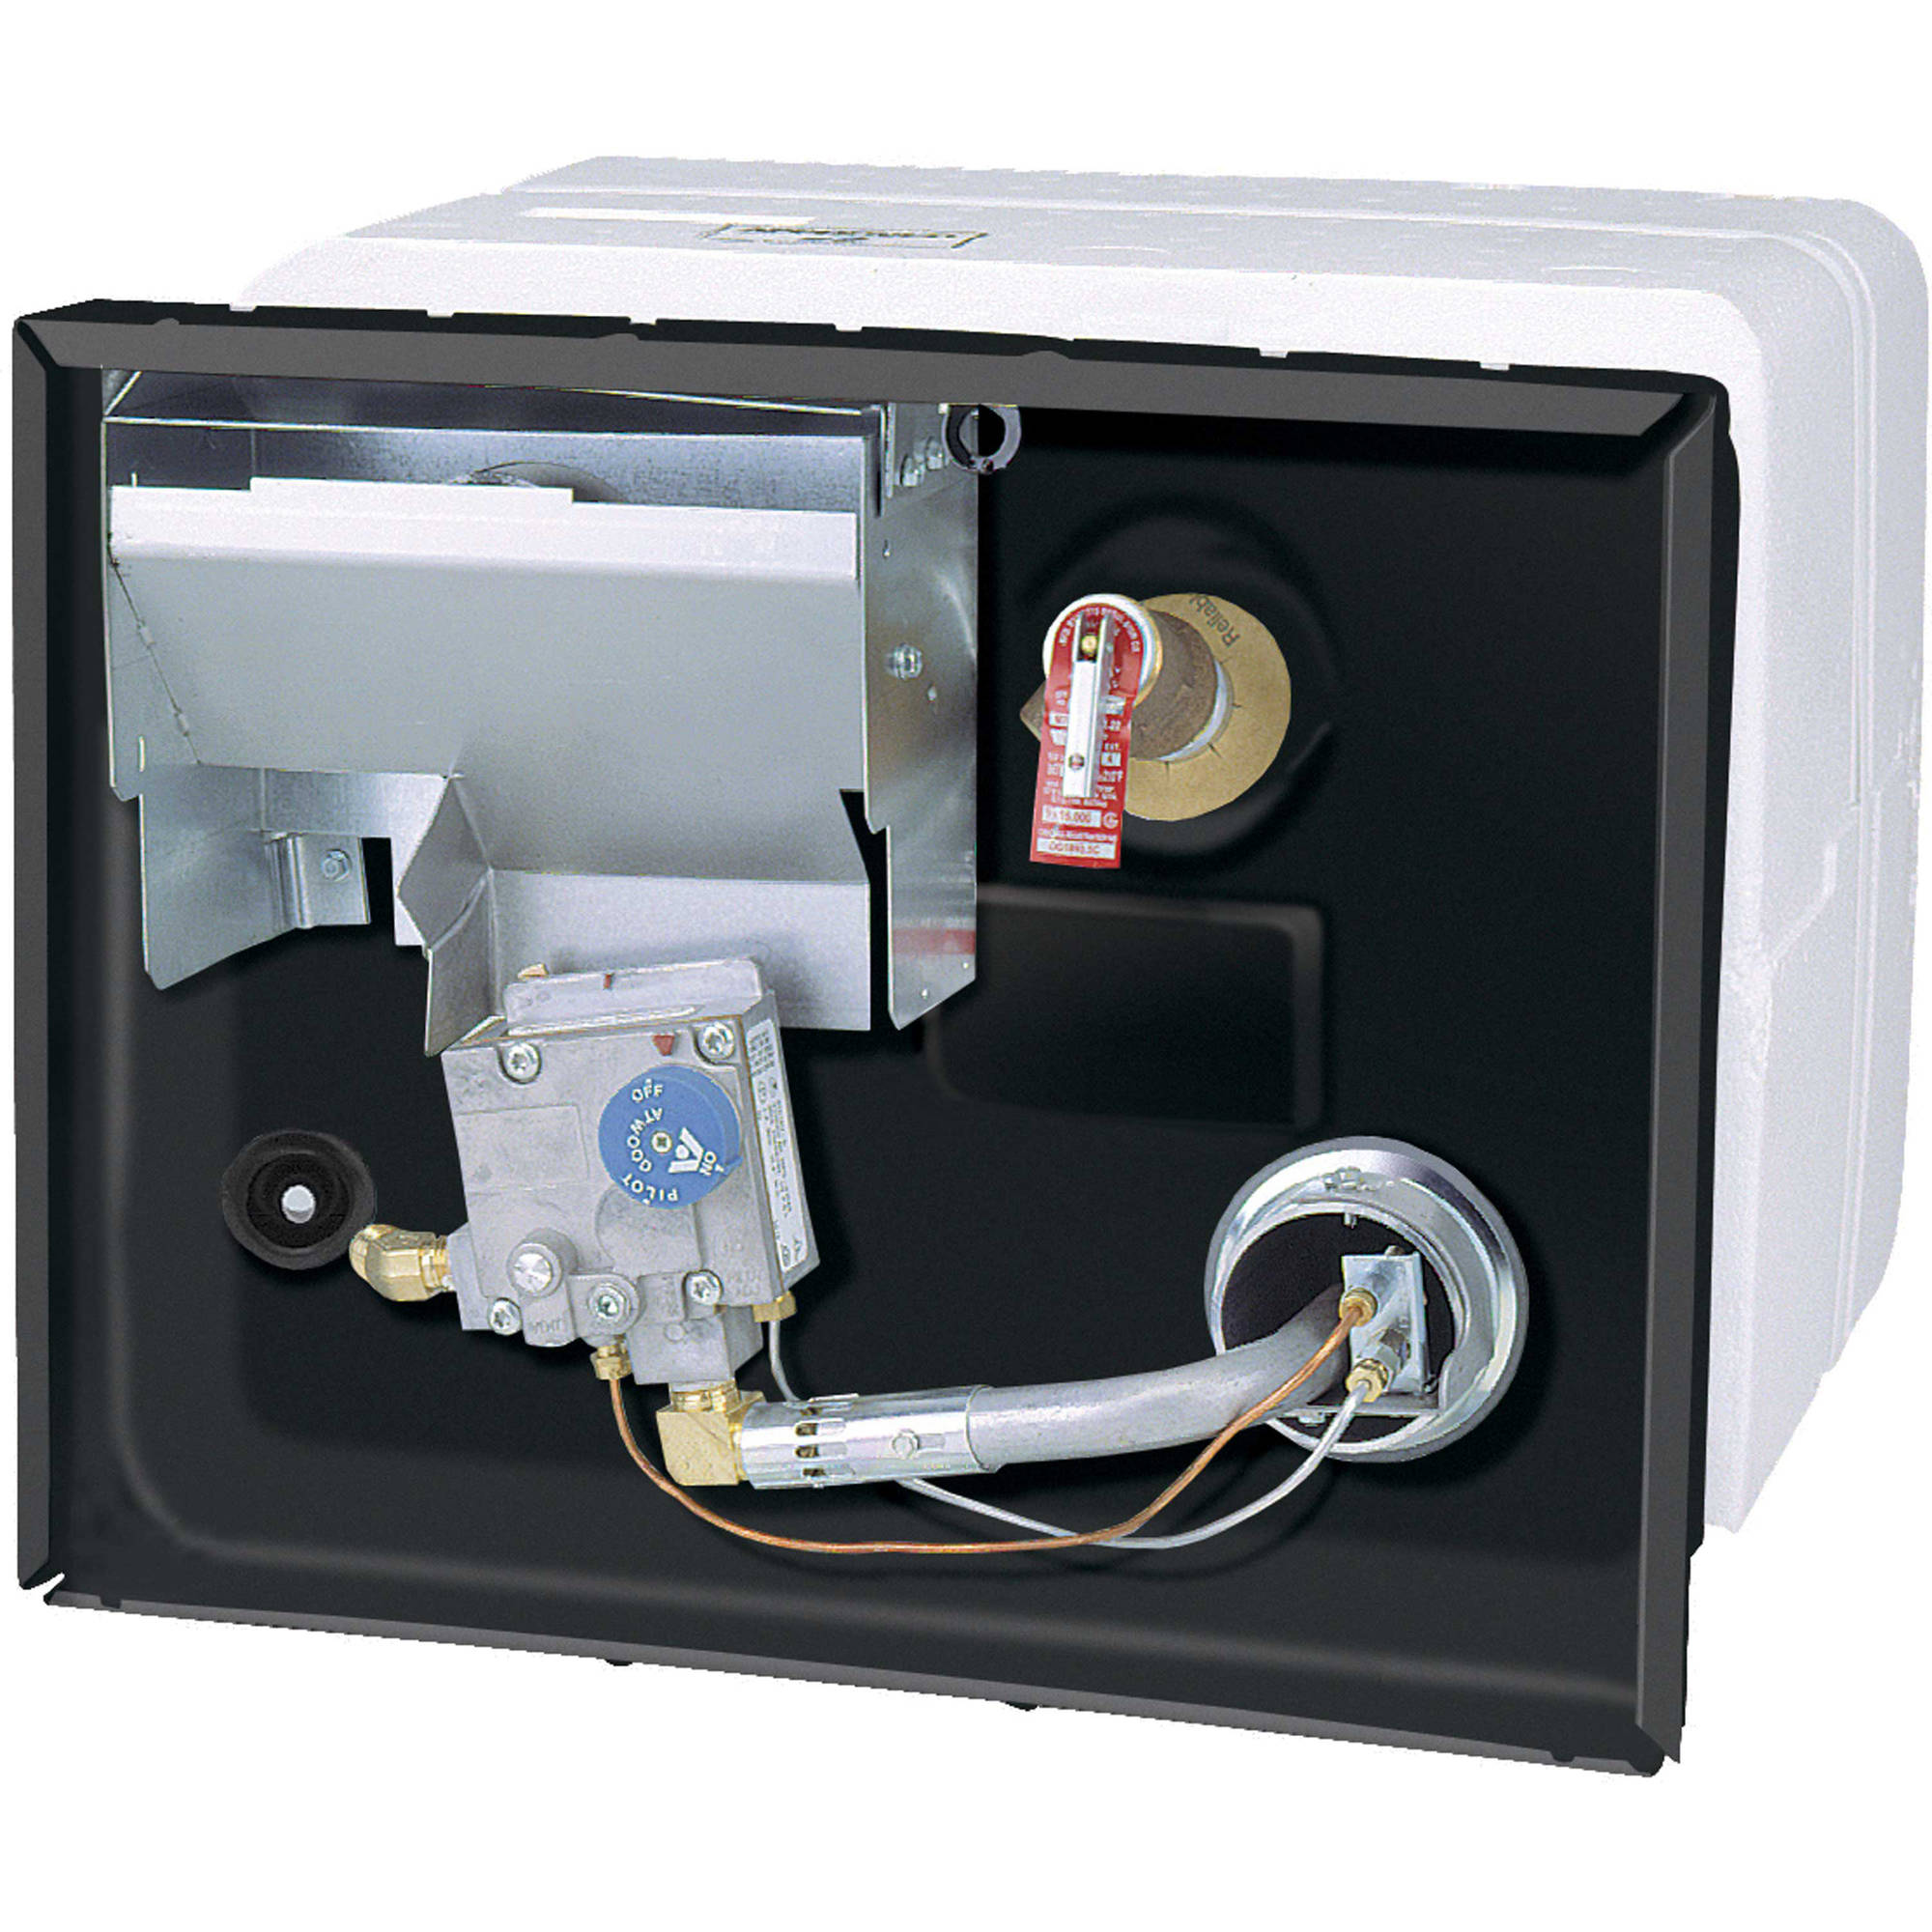 Atwood Pilot Water Heater